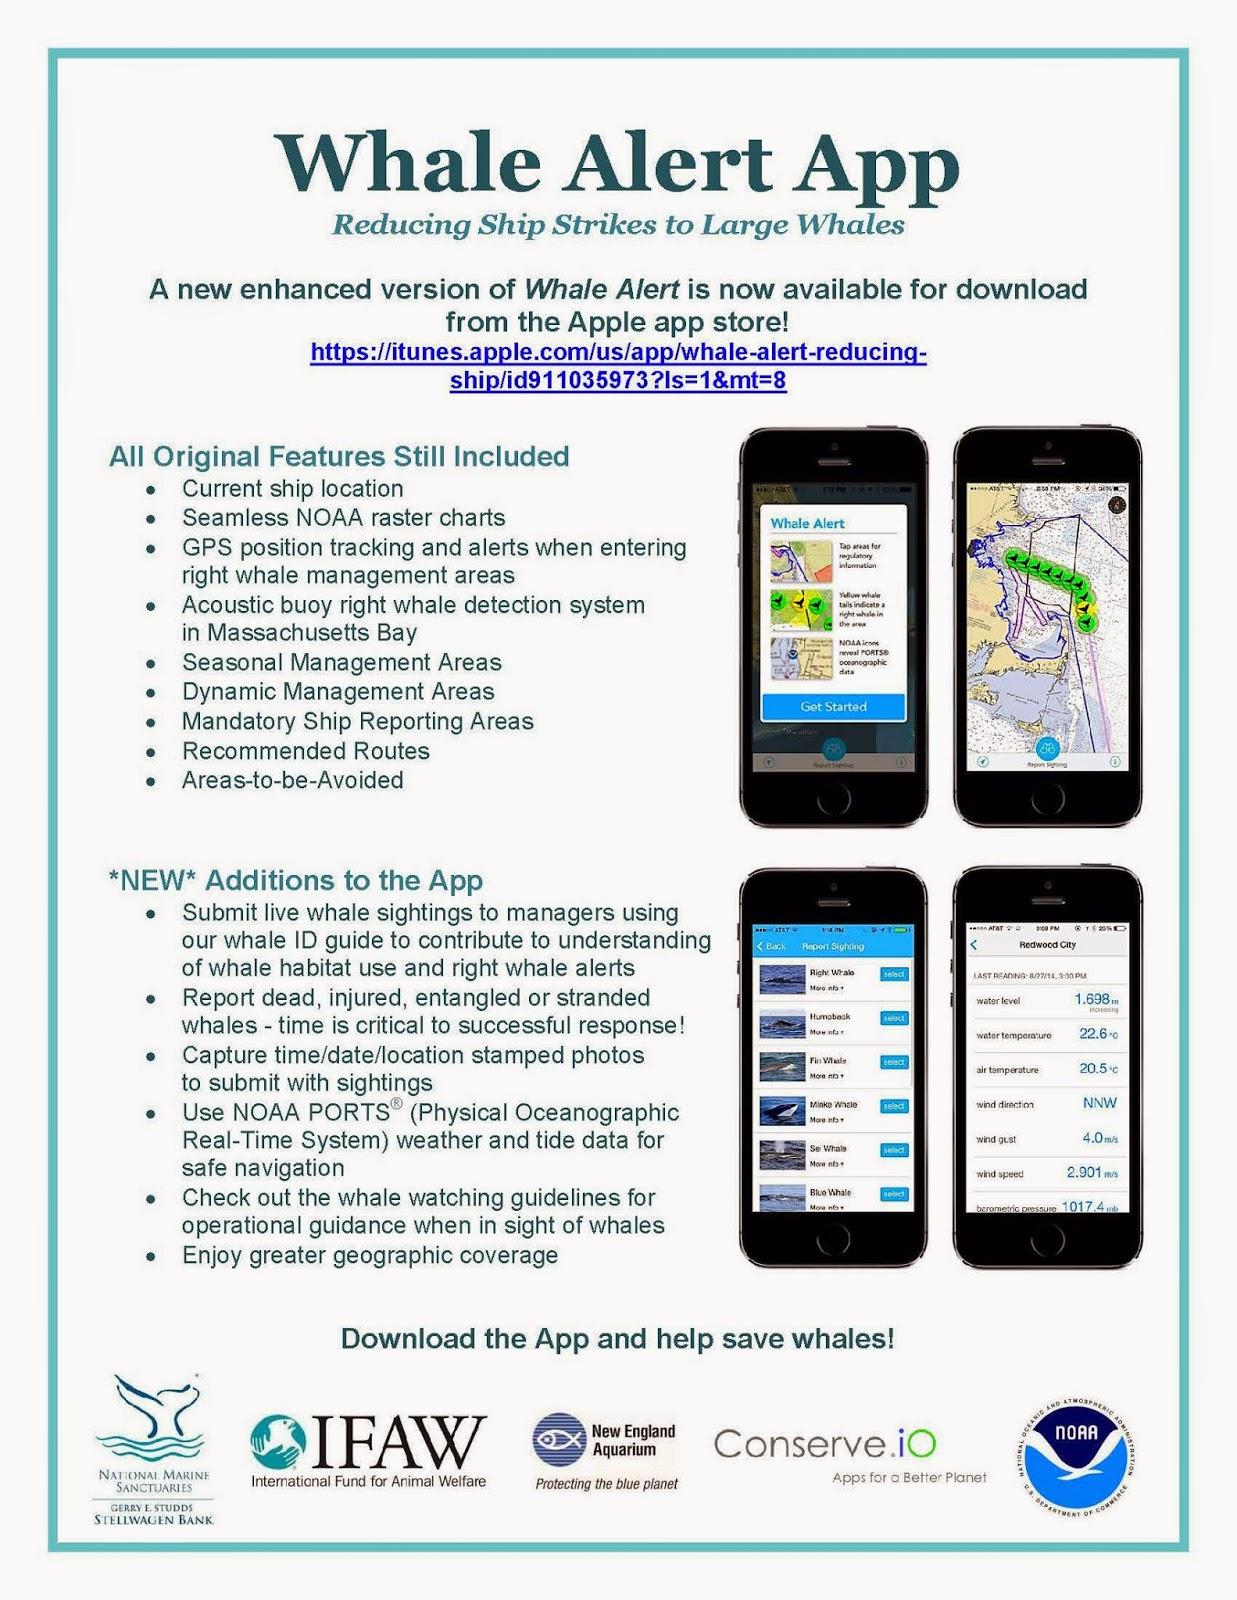 WHALES: Reducing Ship Strikes Worldwide with Whale Alert App